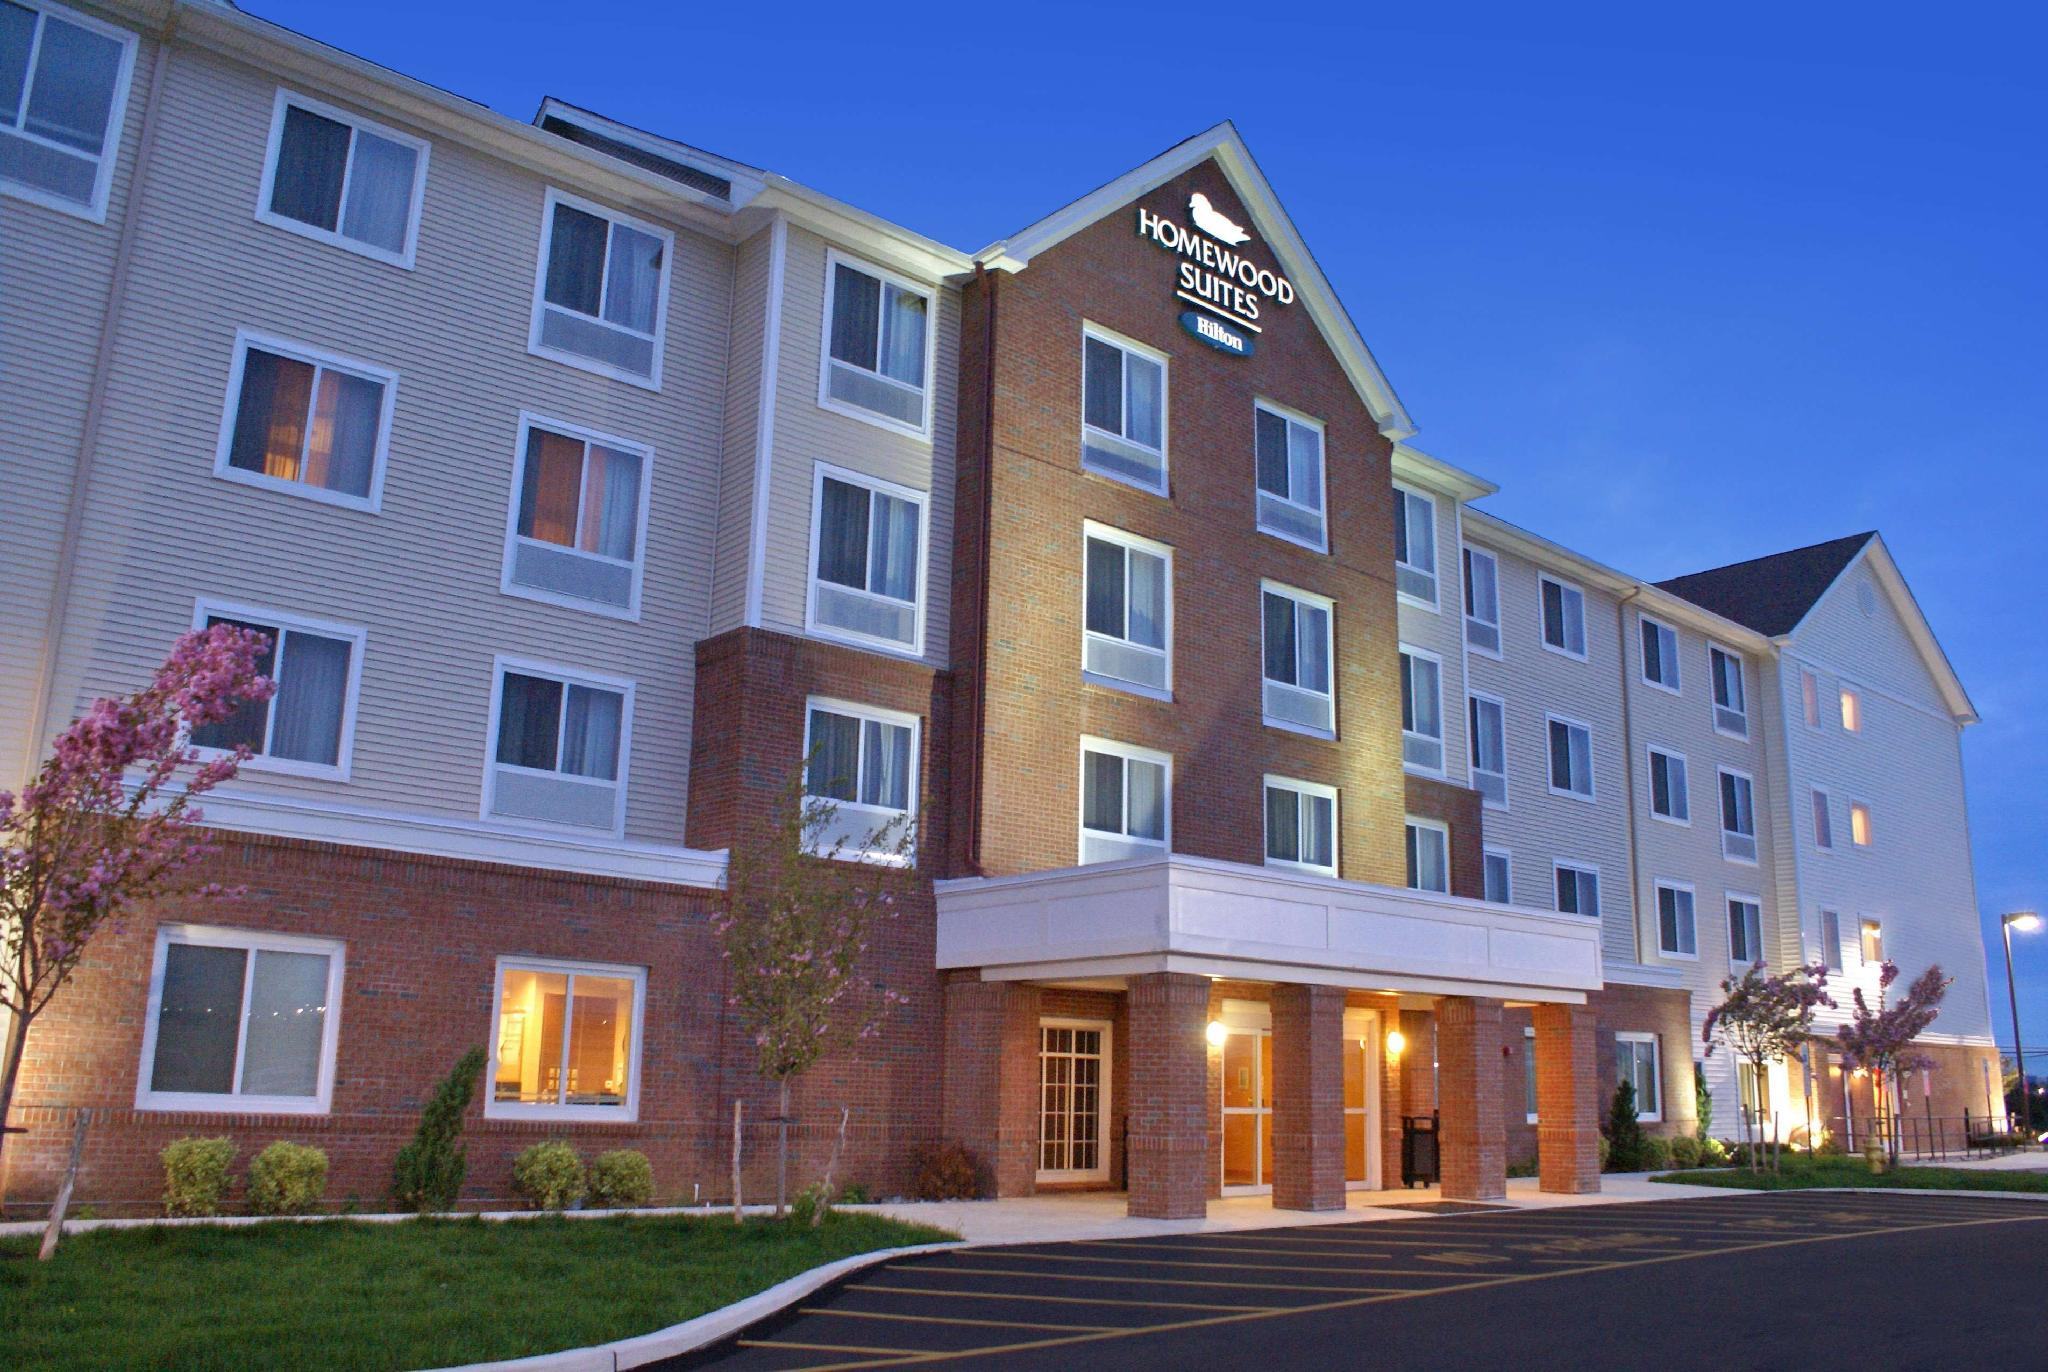 Hotels Review: Homewood Suites Allenton West – Photos, Rates and Deals